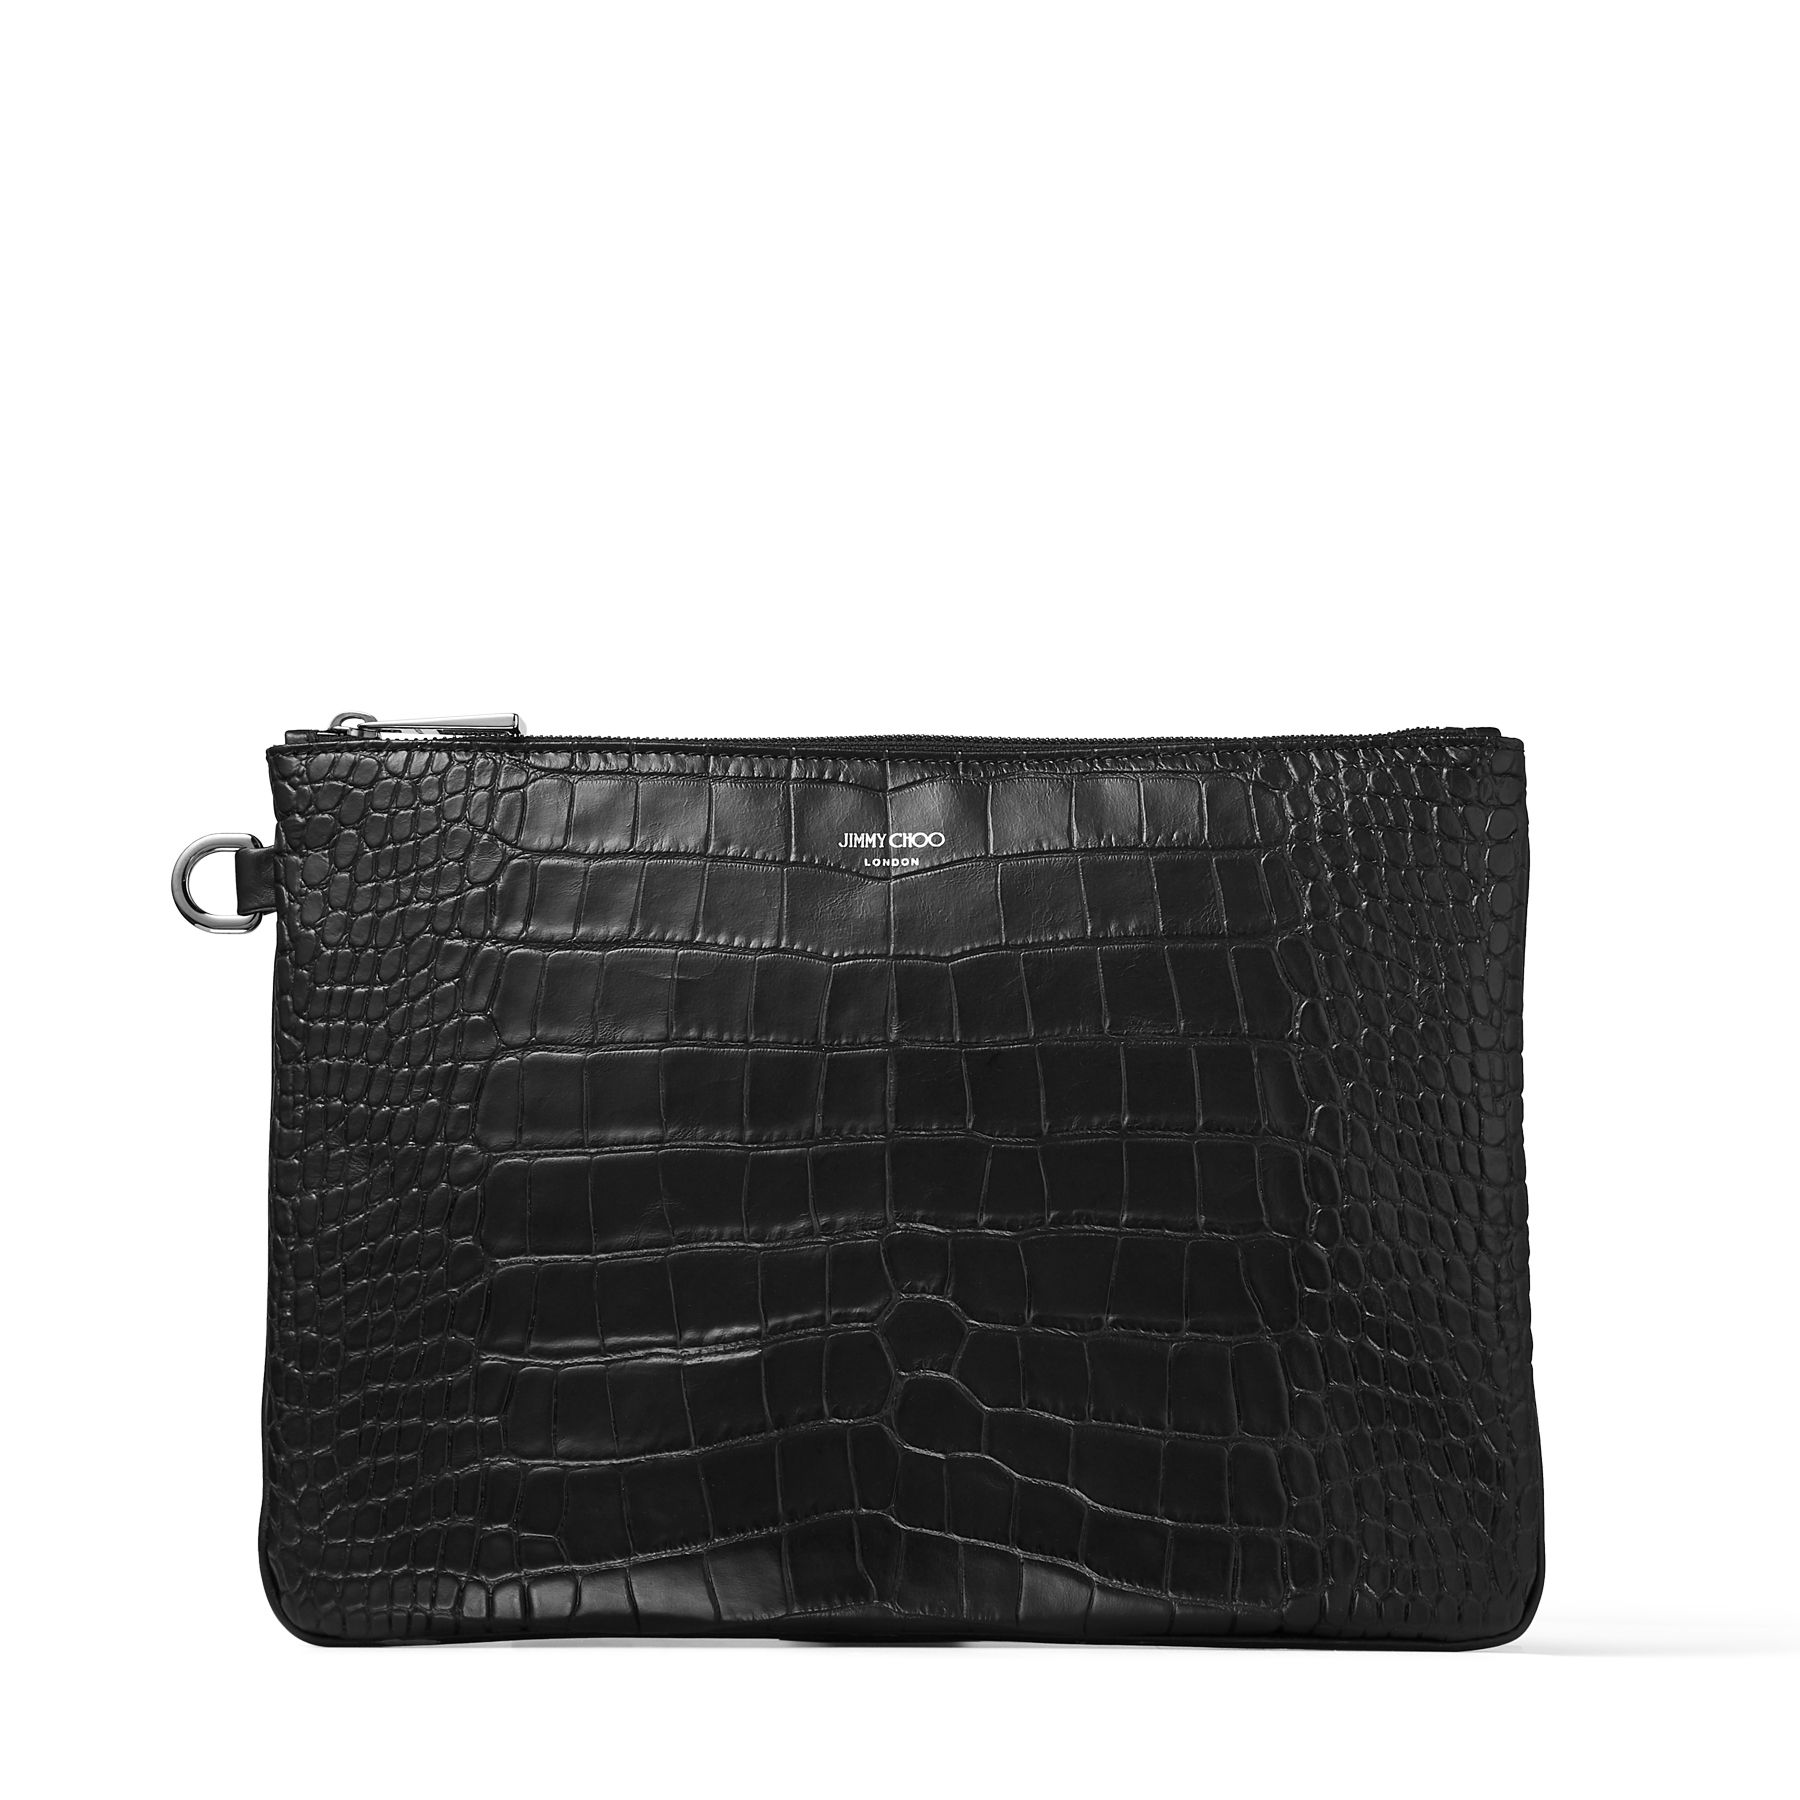 Understated sophistication is reflected in our DEREK clutch bag. Crafted from black croc embossed leather, it is ideal for organising daily documents, while also featuring enough space to store tablets and laptops.